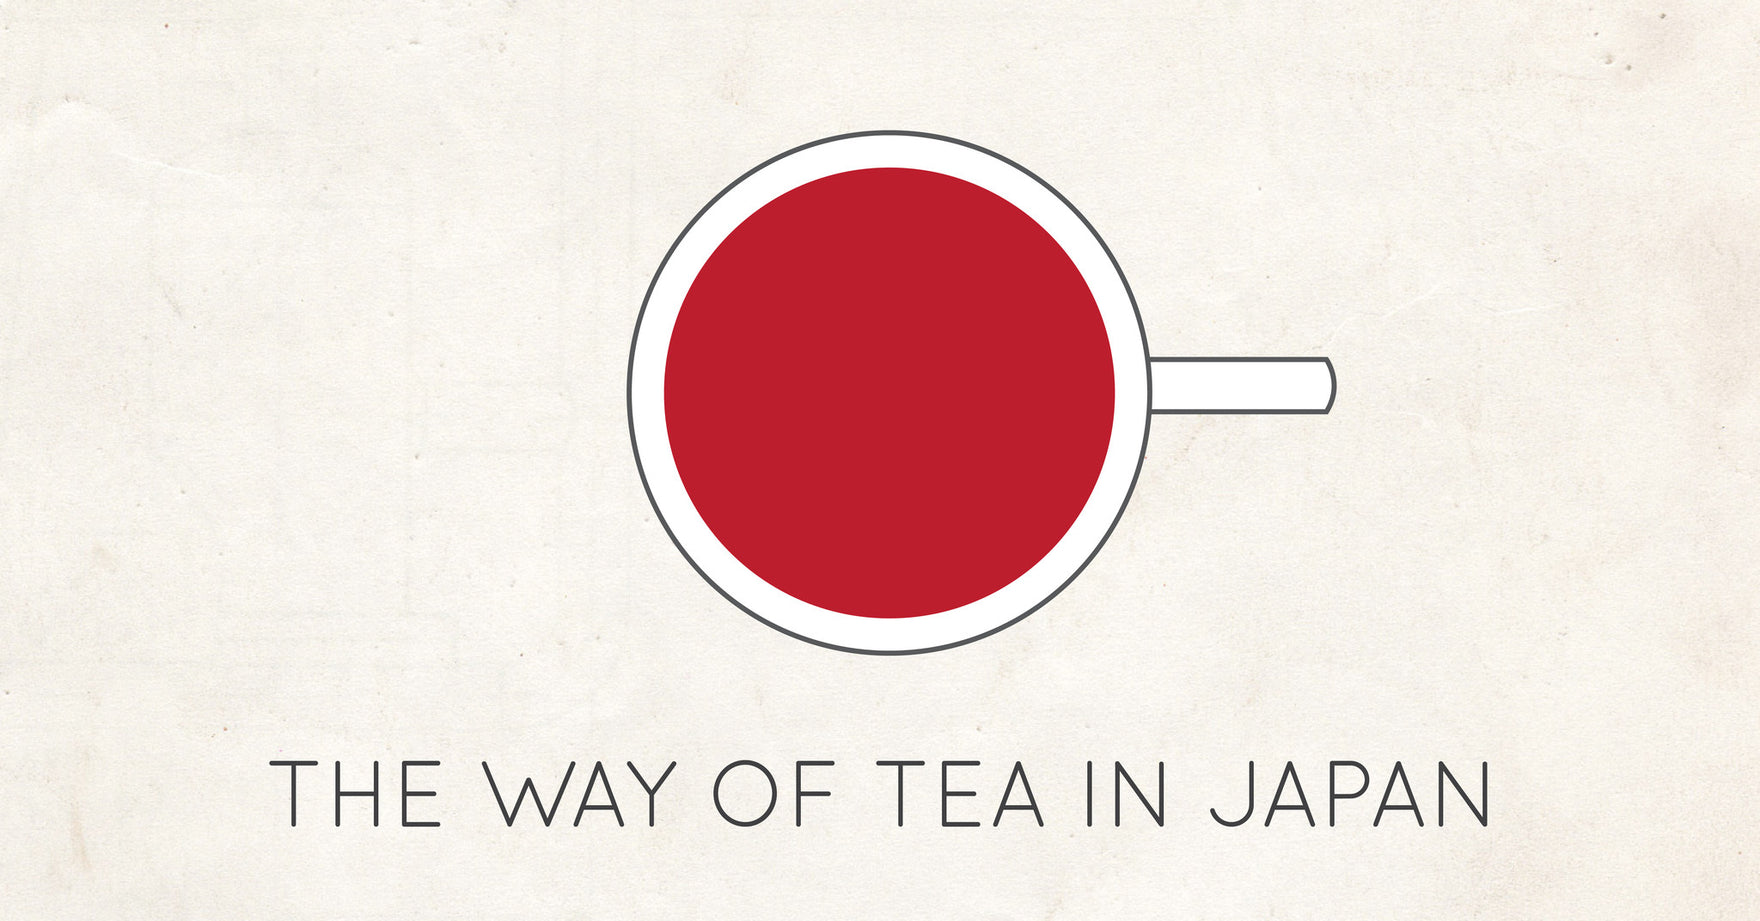 The Way of Tea in Japan